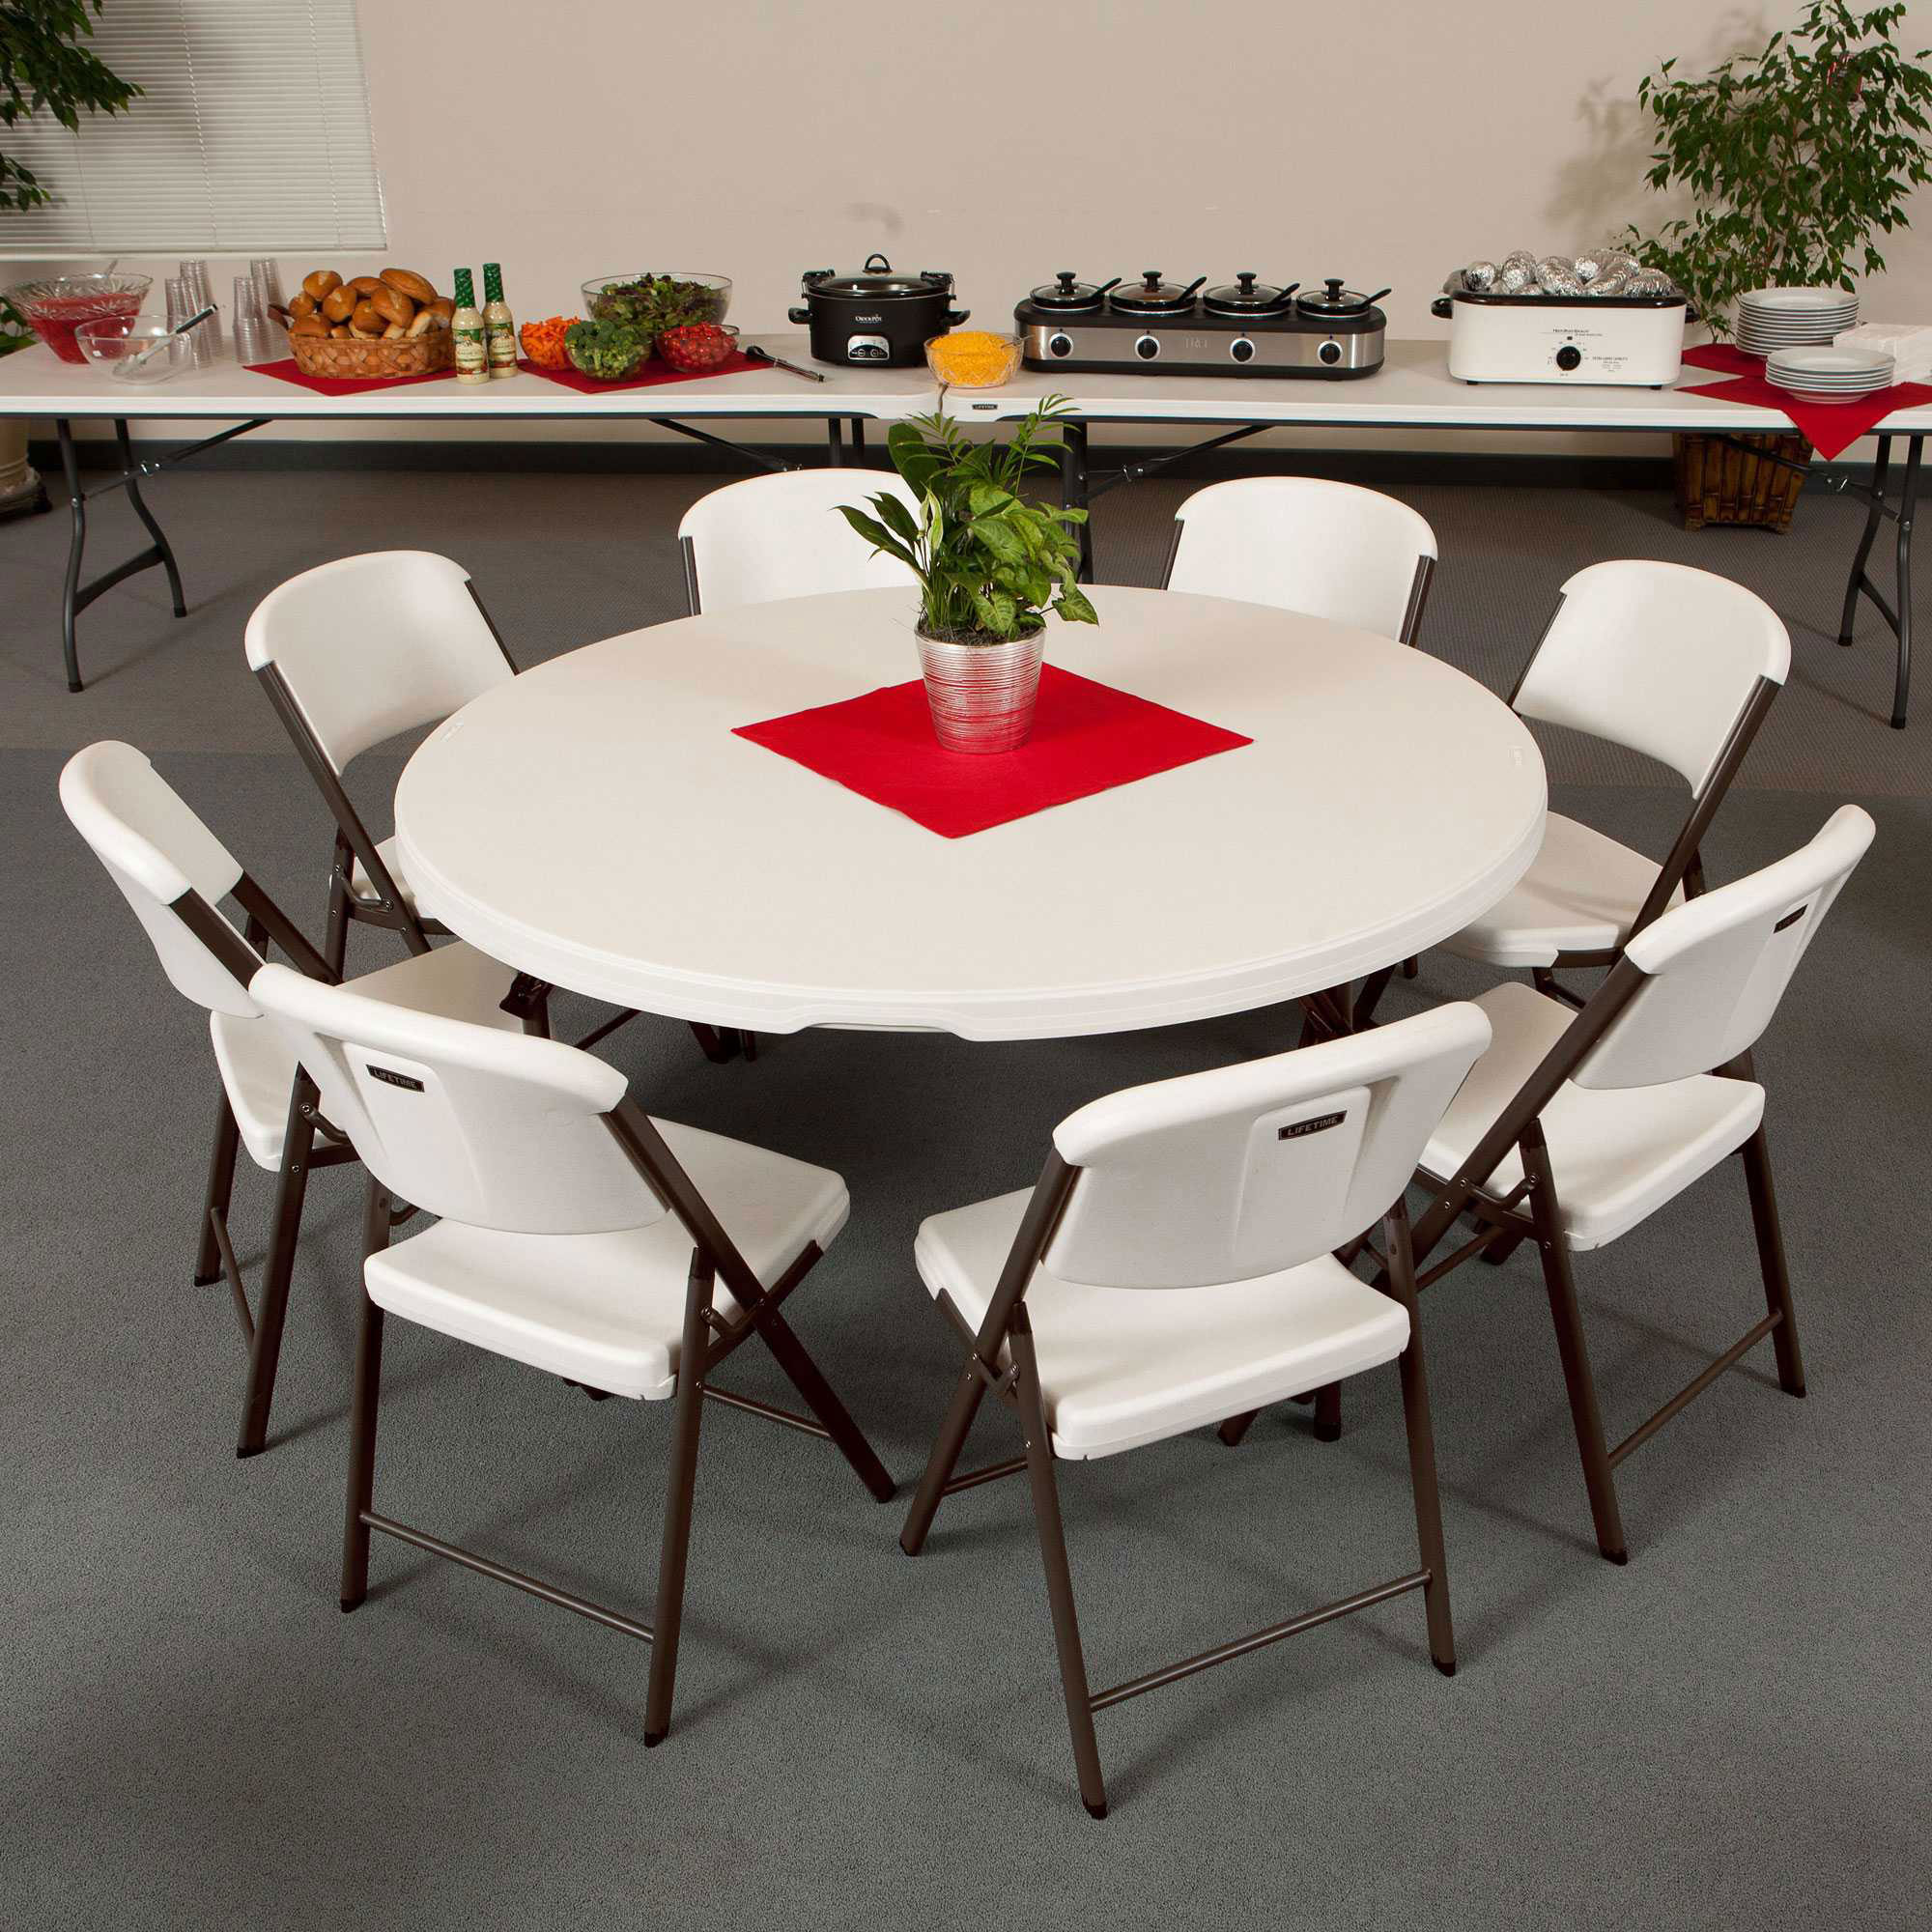 lifetime chairs and tables dining table 80458 chair package sale with fast